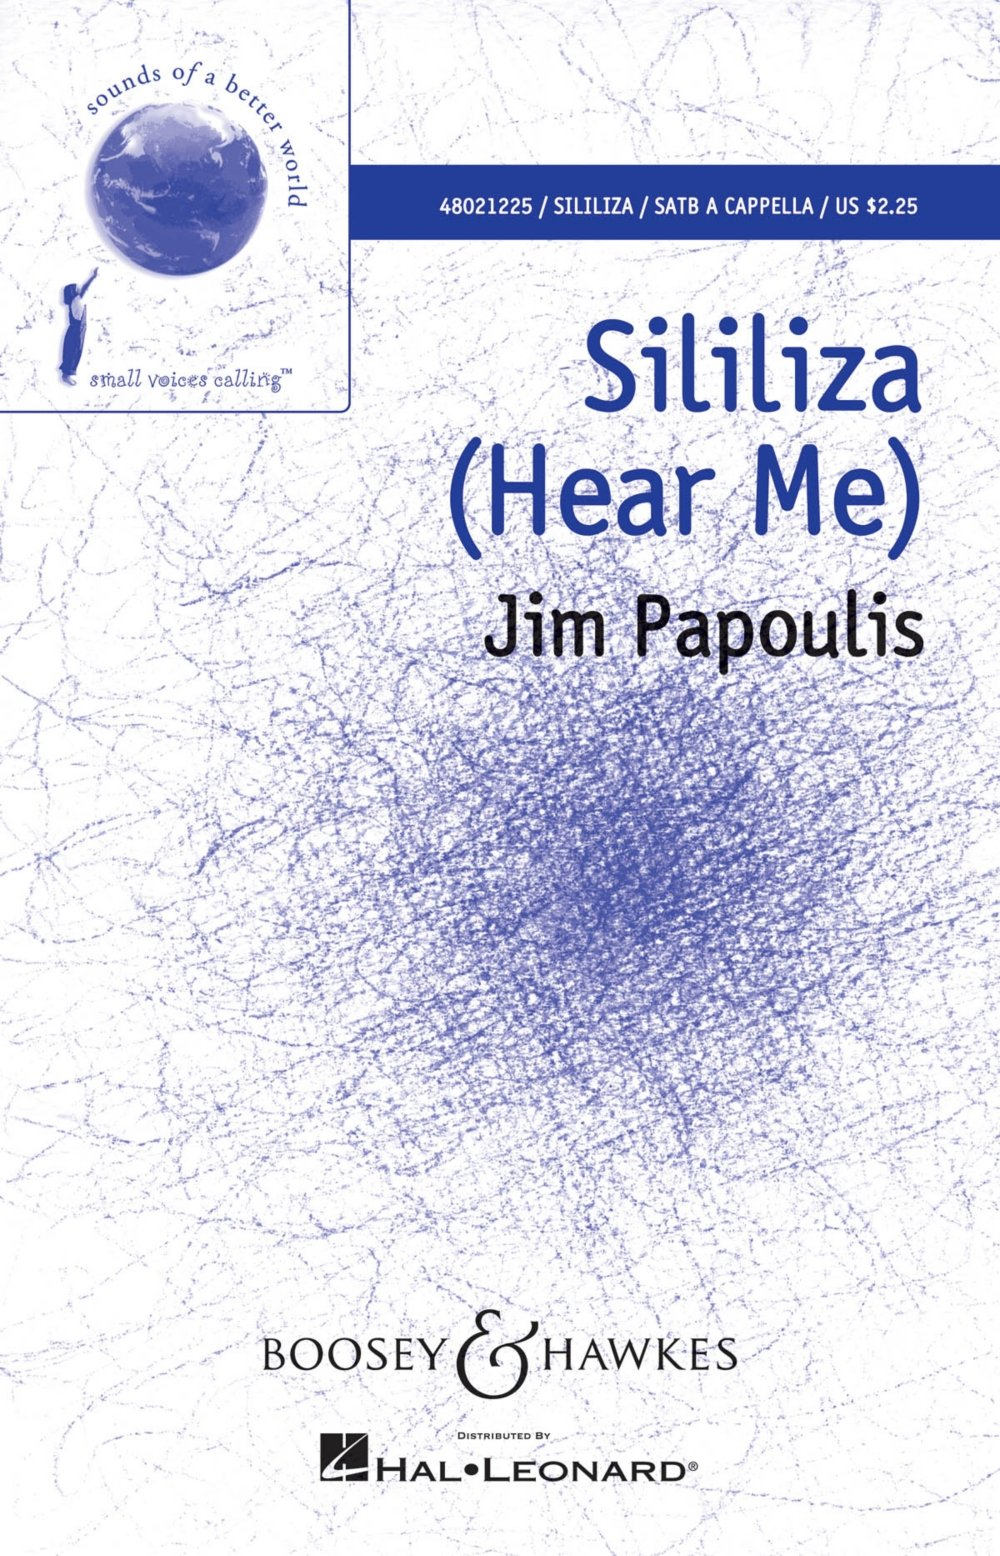 Download Boosey and Hawkes Sililiza (Hear Me) (Sounds of a Better World) SATB a cappella composed by Jim Papoulis pdf